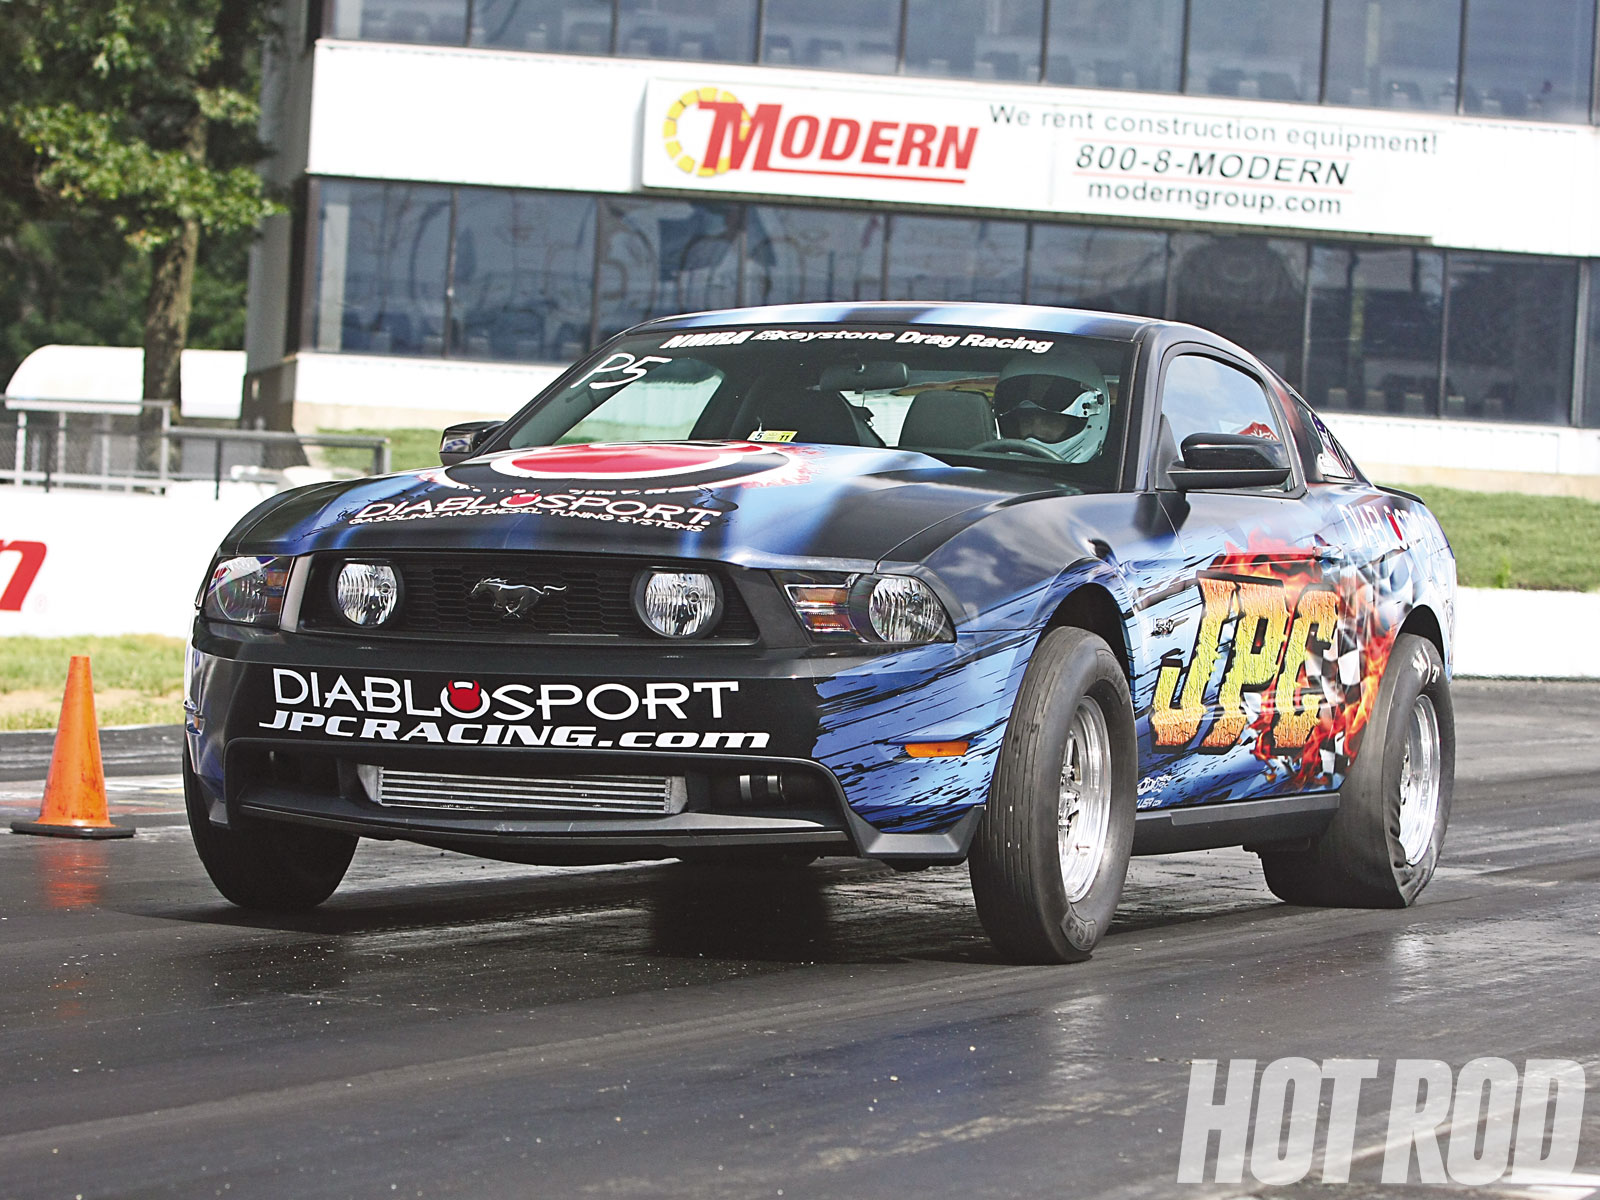 hight resolution of hrdp 1104 01 o what breaks in 2005 2011 ford mustangs diablosport ford mustang